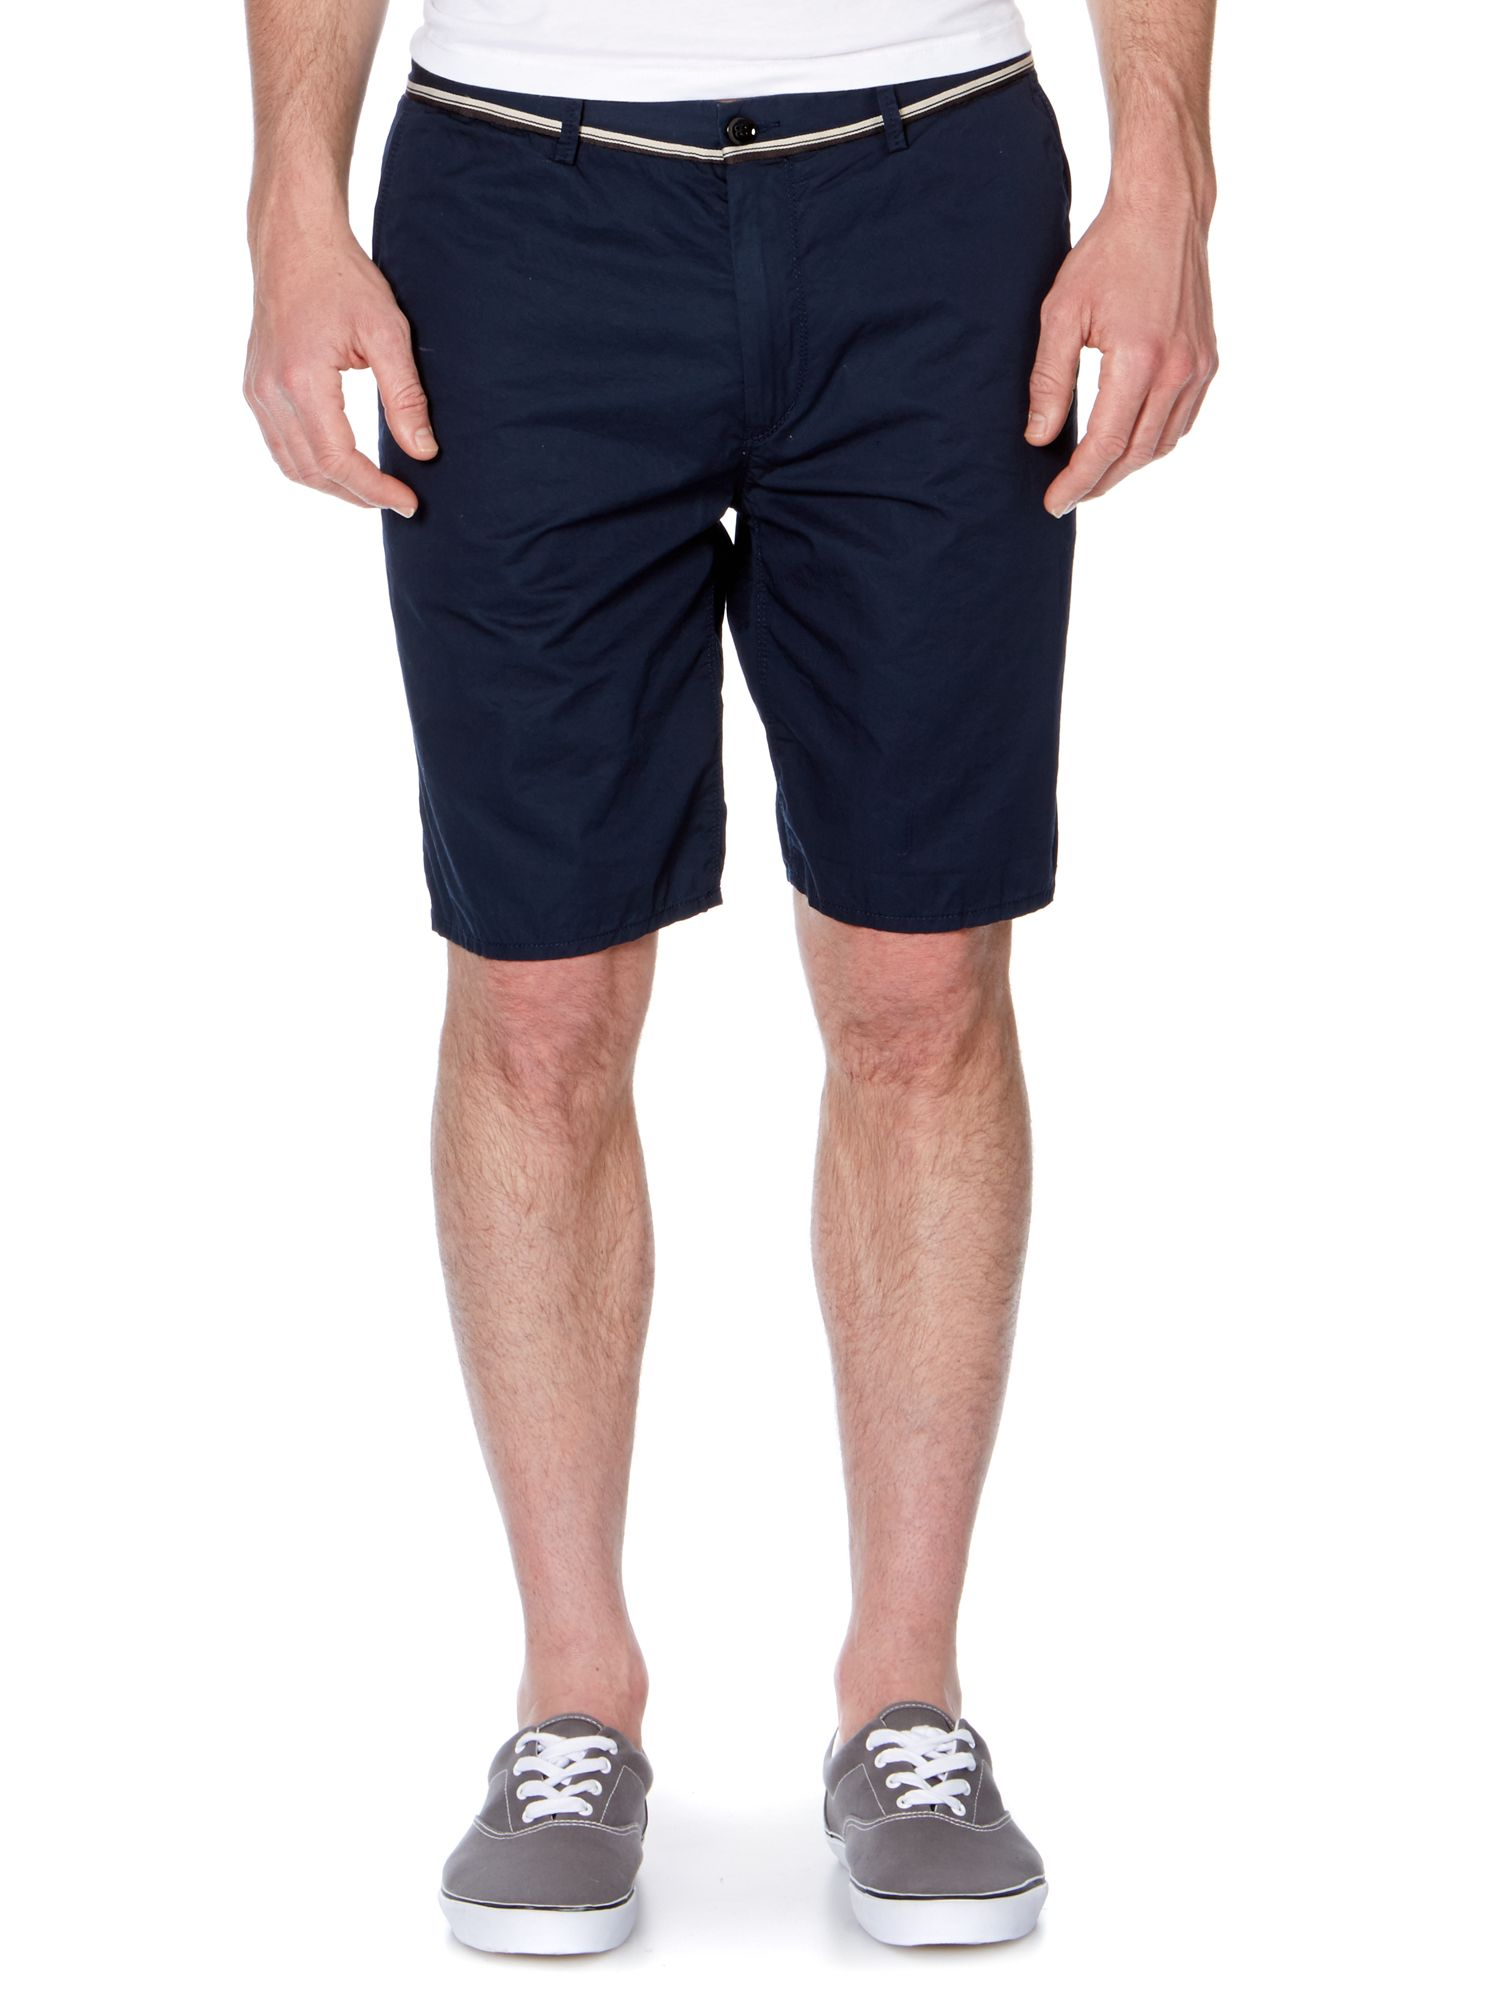 Four pocket twill short